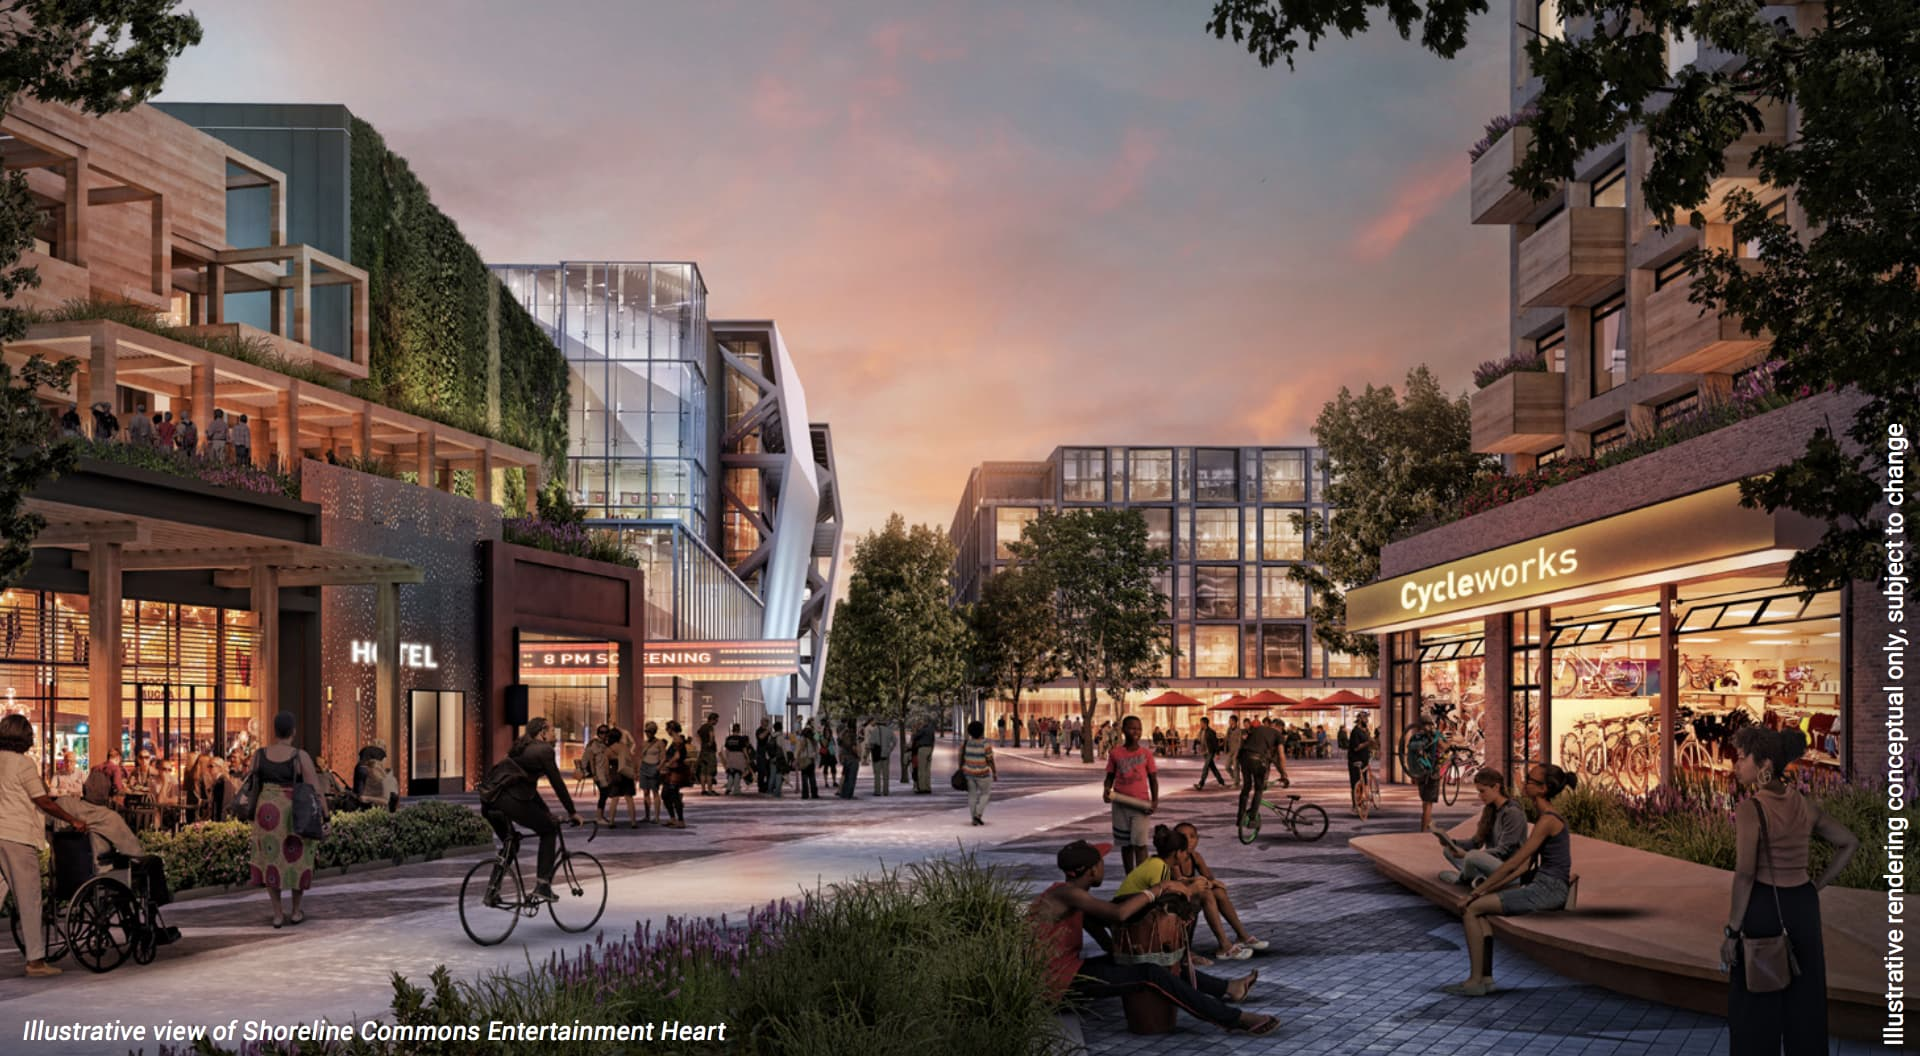 Google has huge plans for its home city — here's a look at the massive development